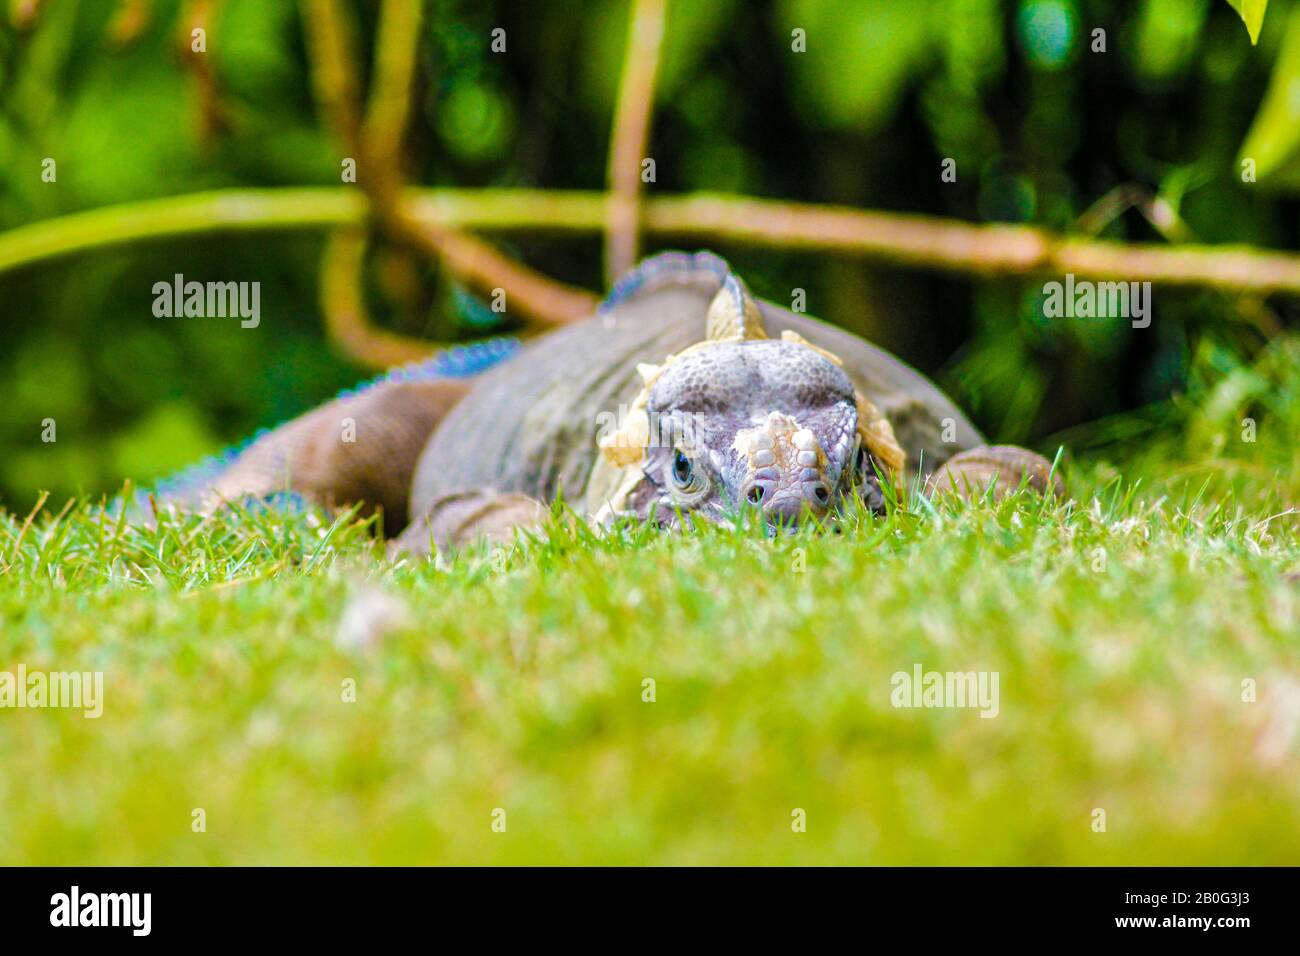 Iguana perched in the green grass Stock Photo